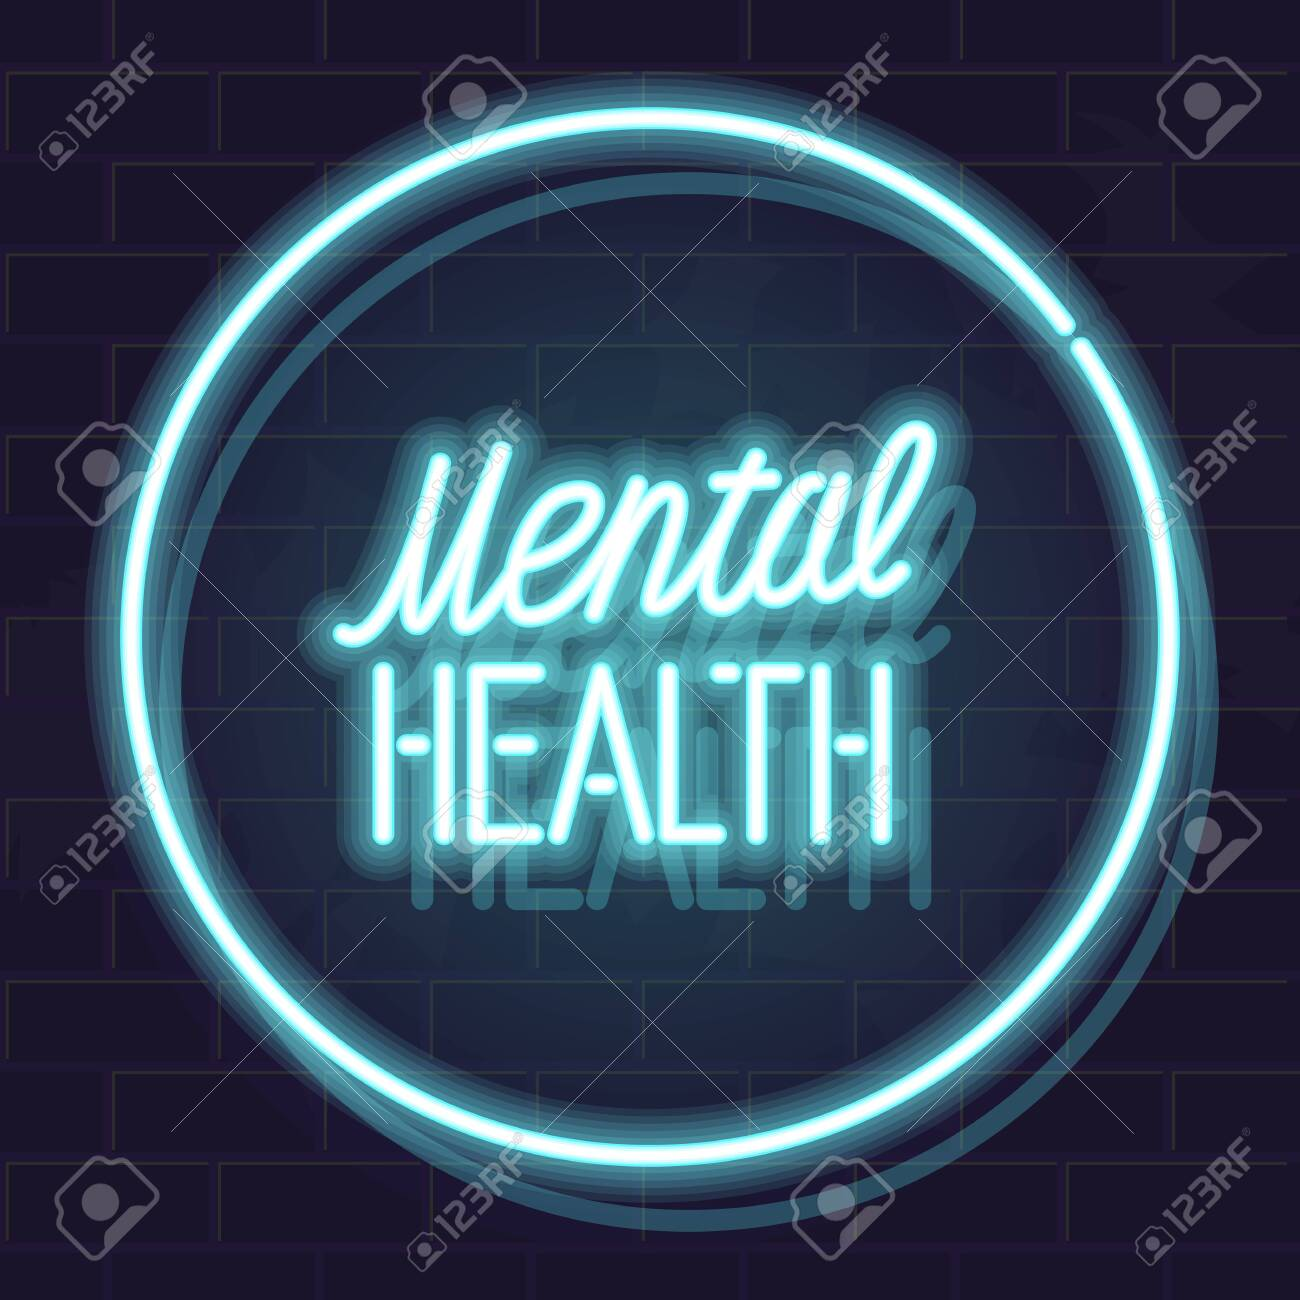 Mental Health Typography In Neon Circle Isolated Vector Glowing Royalty Free Cliparts Vectors And Stock Illustration Image 139888257